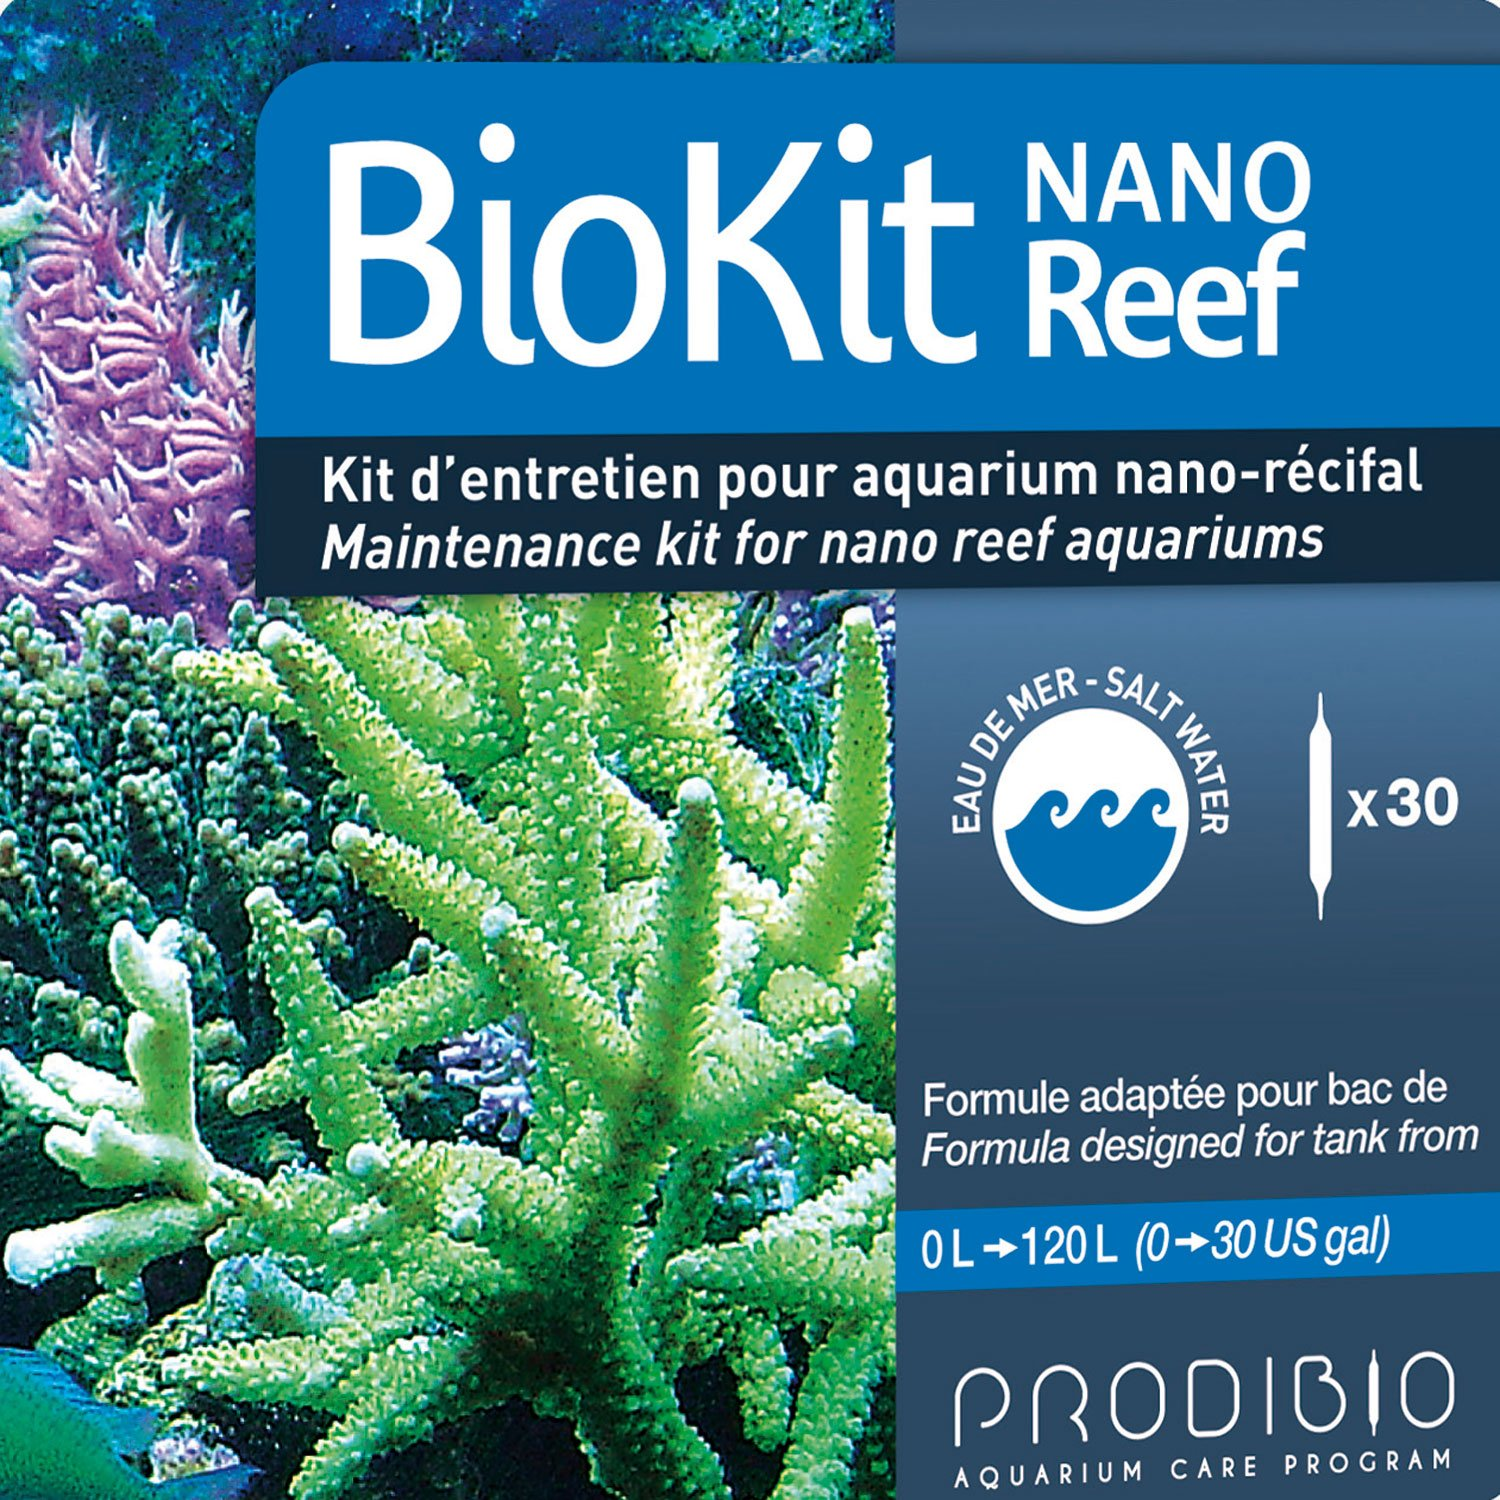 $45 30 vial kits is a 10 week care program for nano reefs up to 40